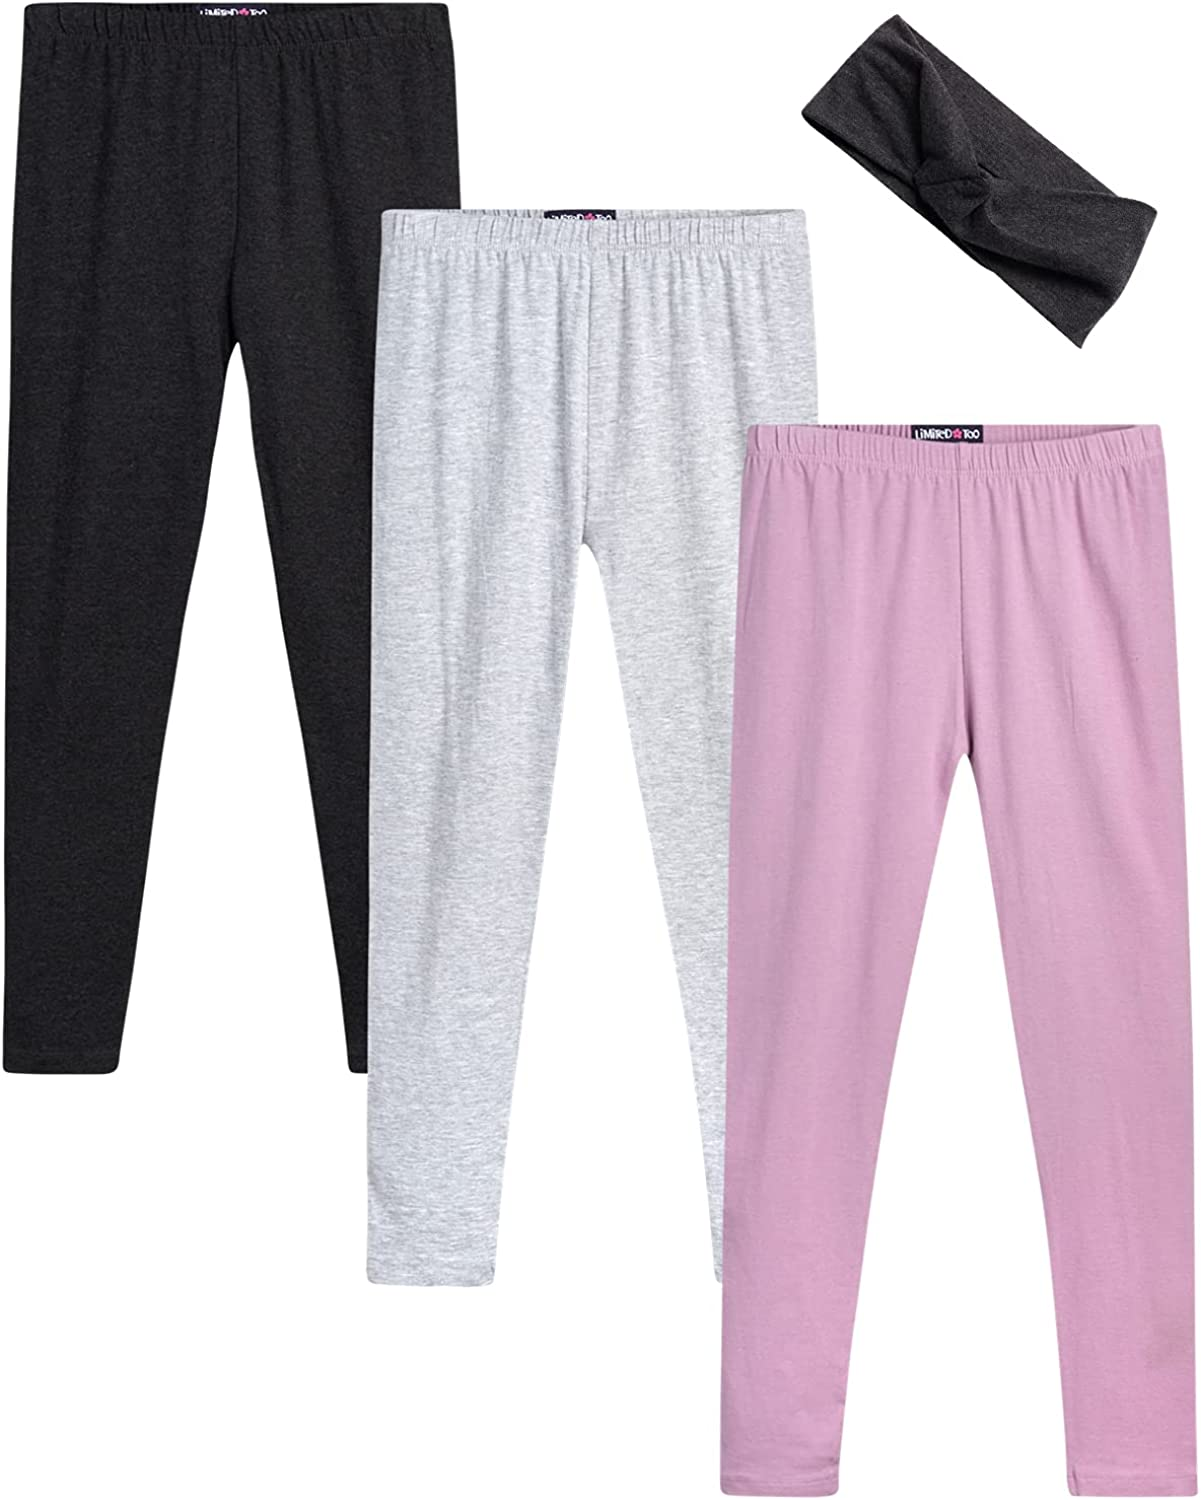 Challenge the lowest price of Japan Limited Too Sale Girls' Leggings - Full Length Solid Pack 3